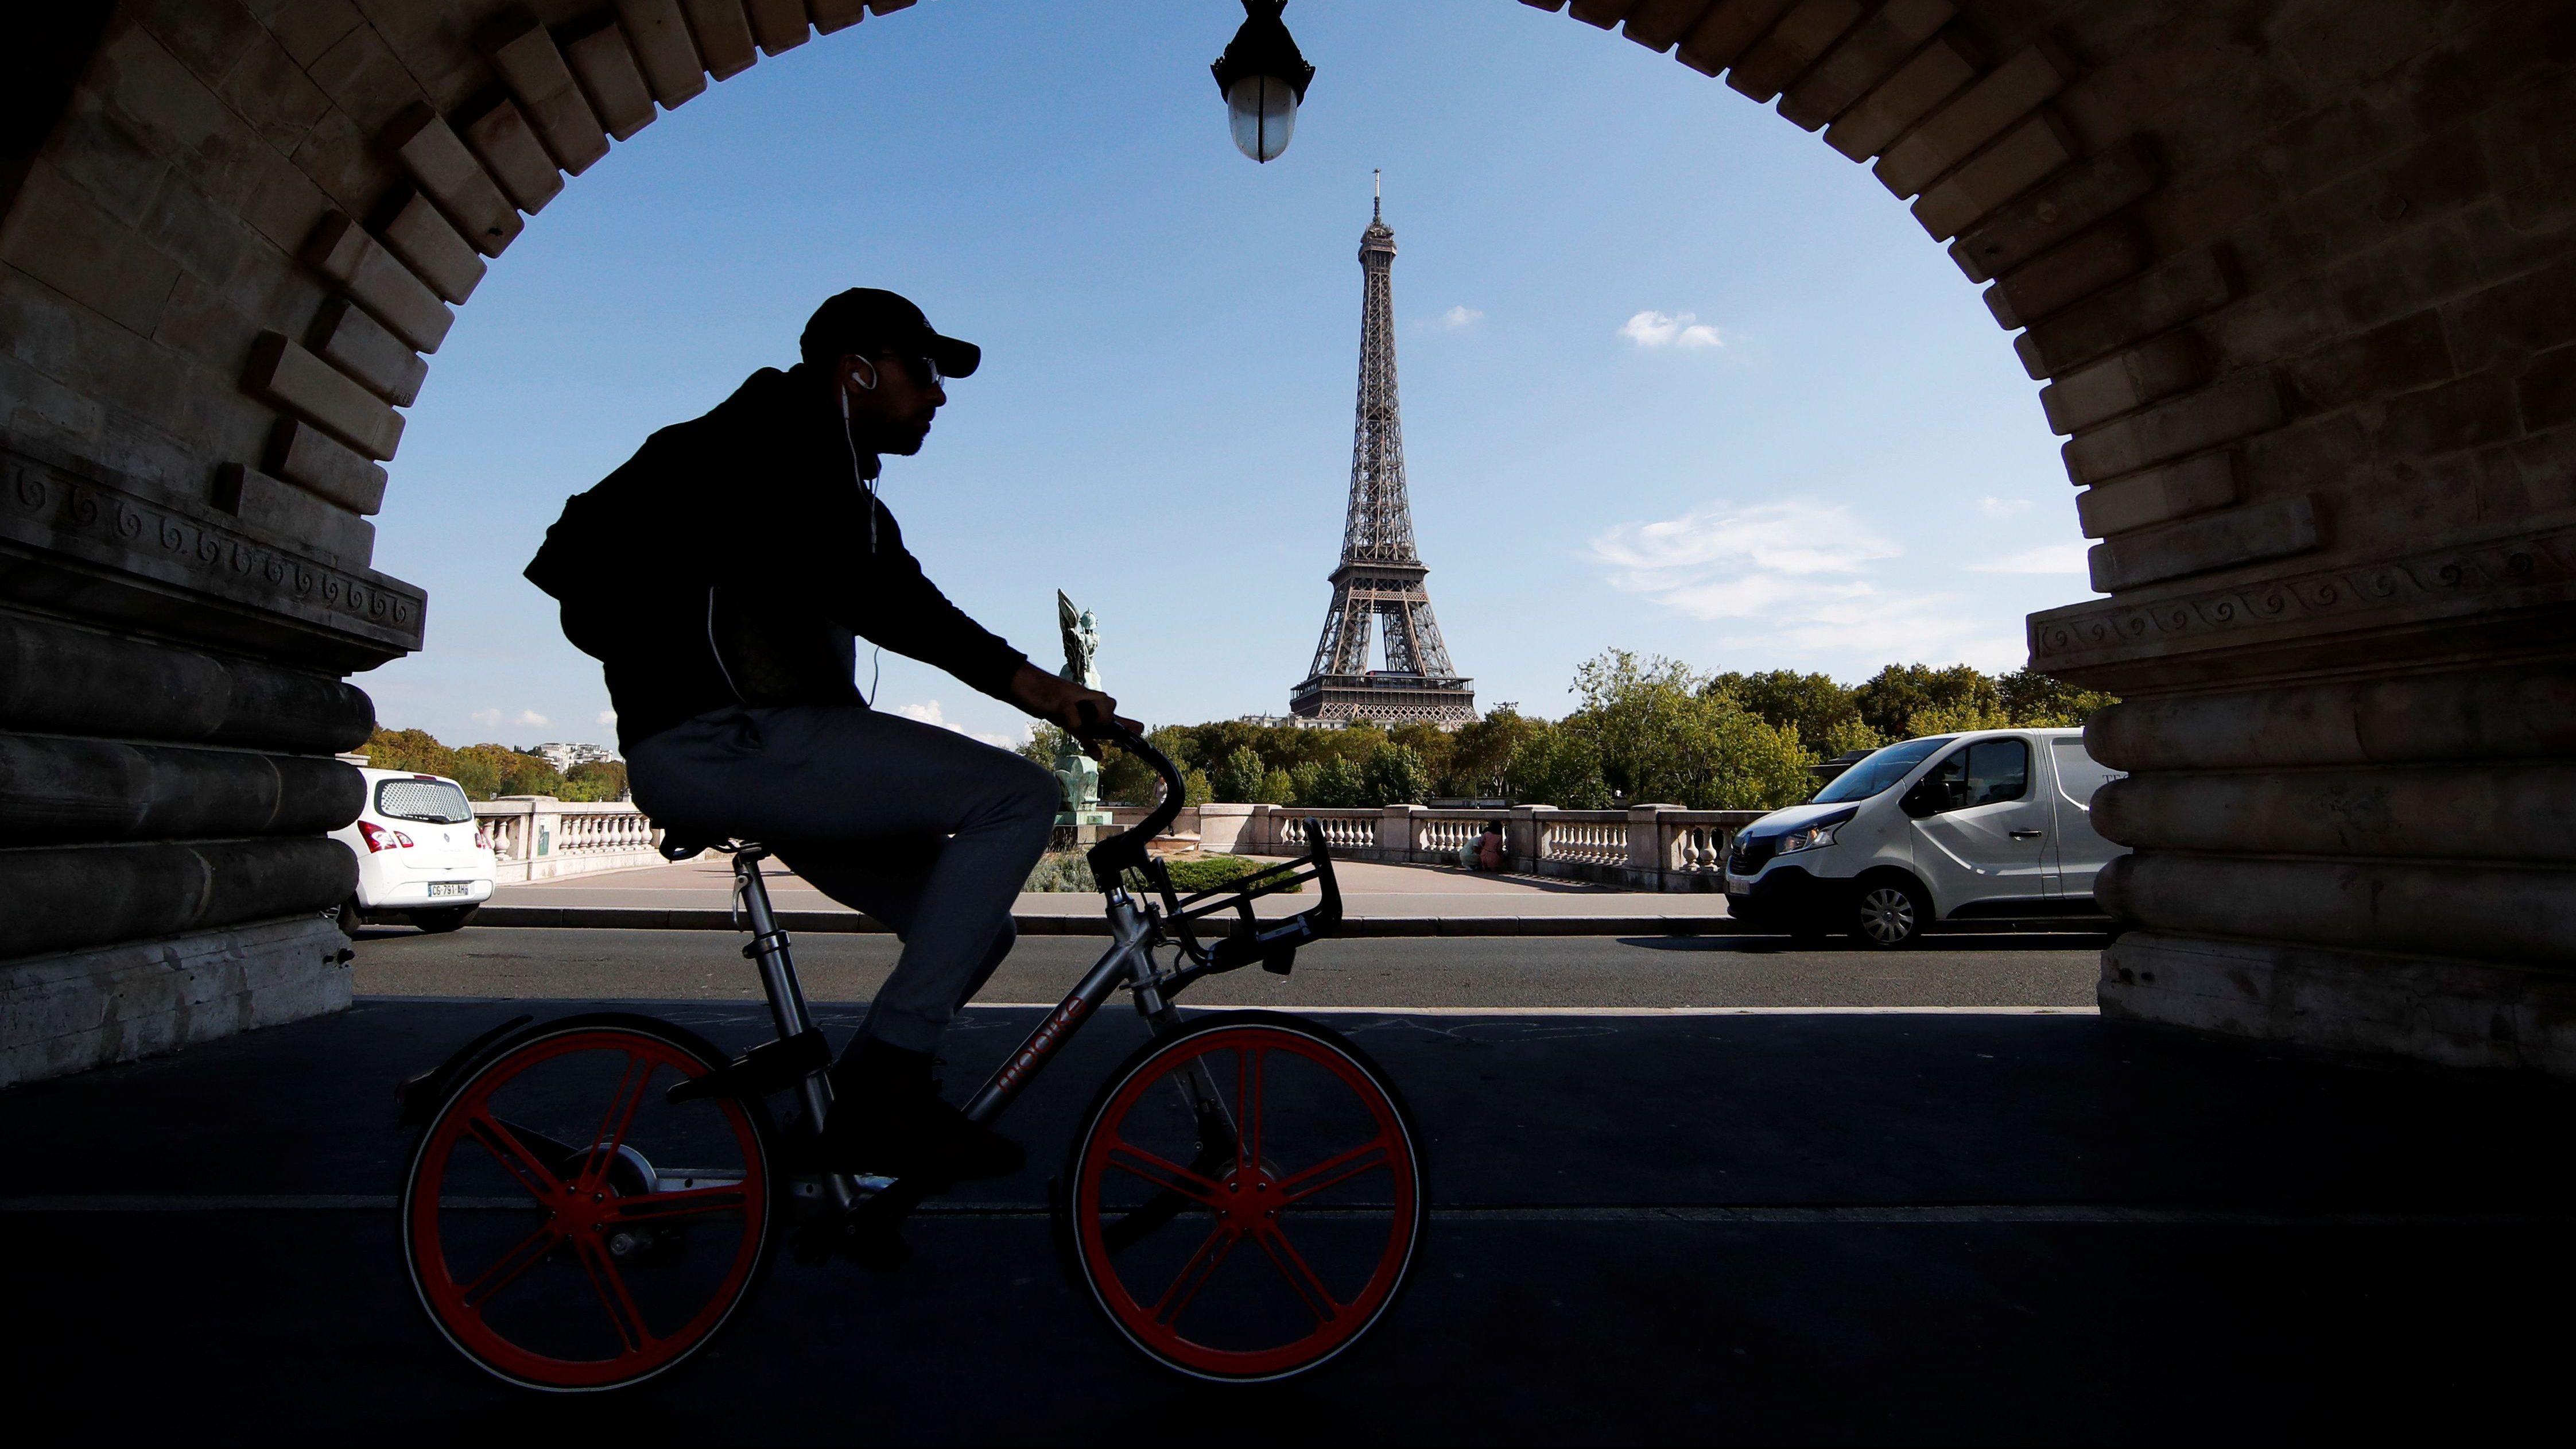 A man rides a bike-sharing service mobike bicycle at the Pont de Bir-Hakeim birdge near the Eiffel Tower in Pairs